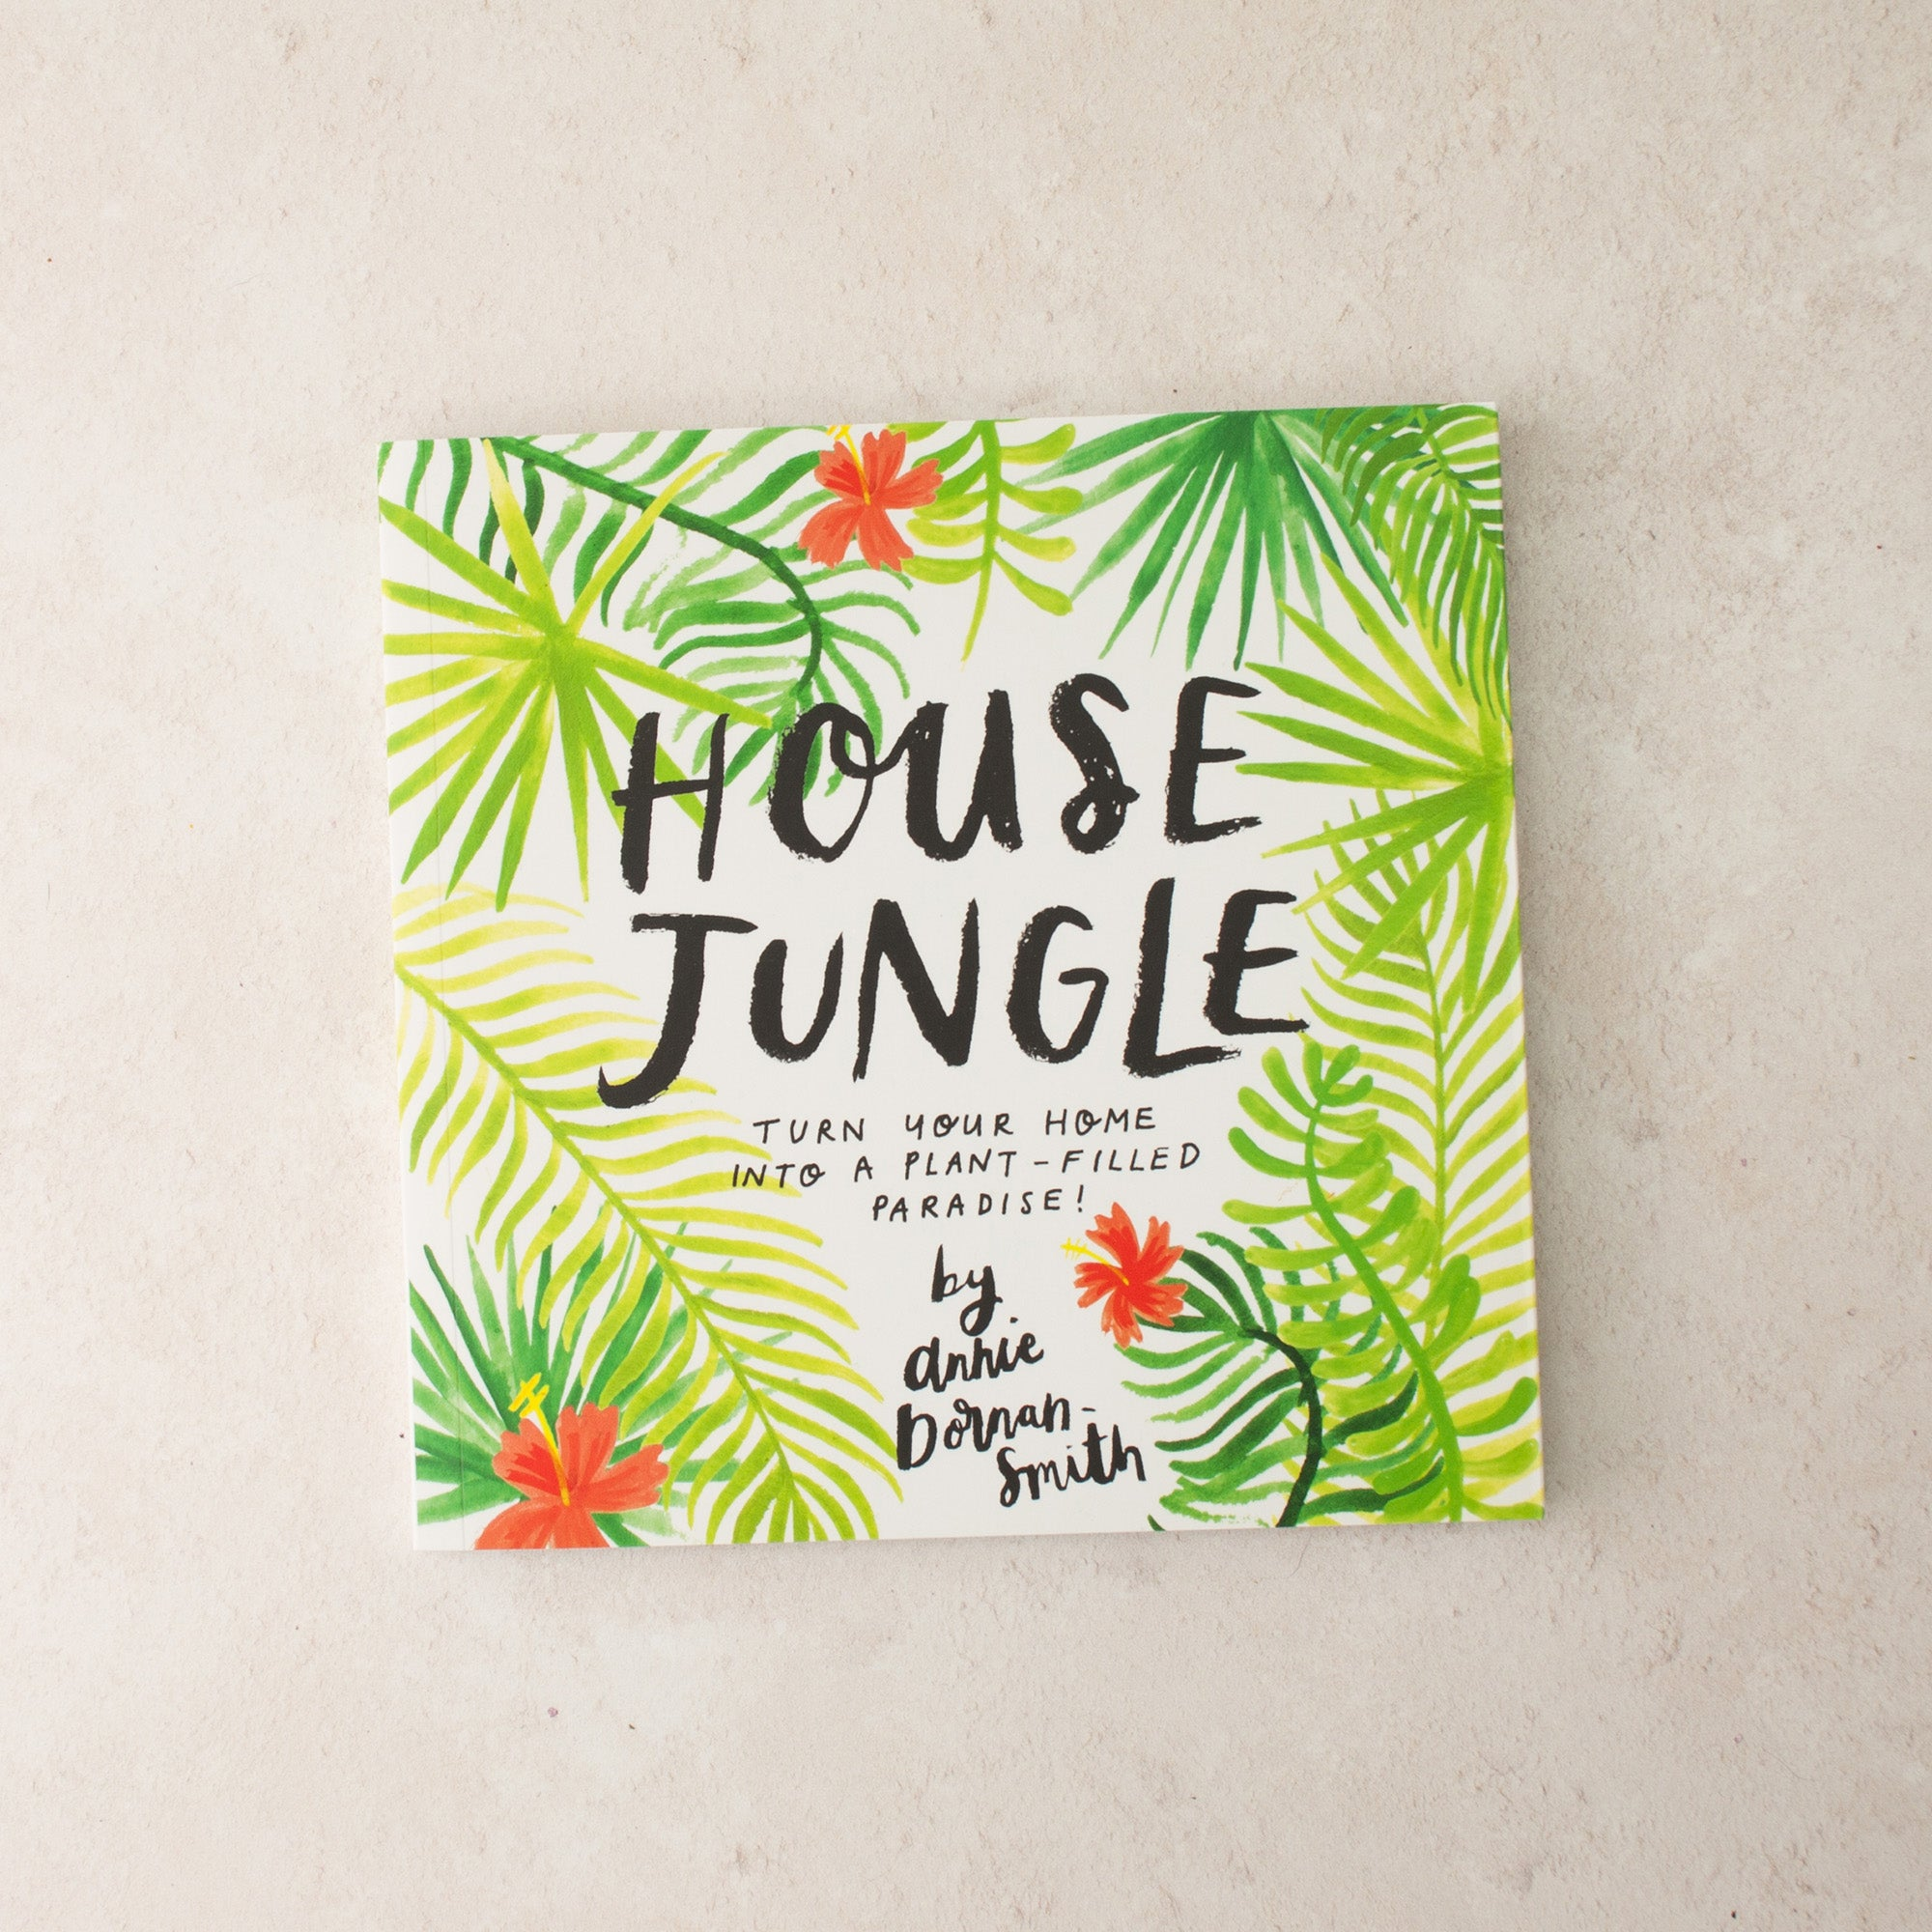 Image of House Jungle By Annie Dornan Smith